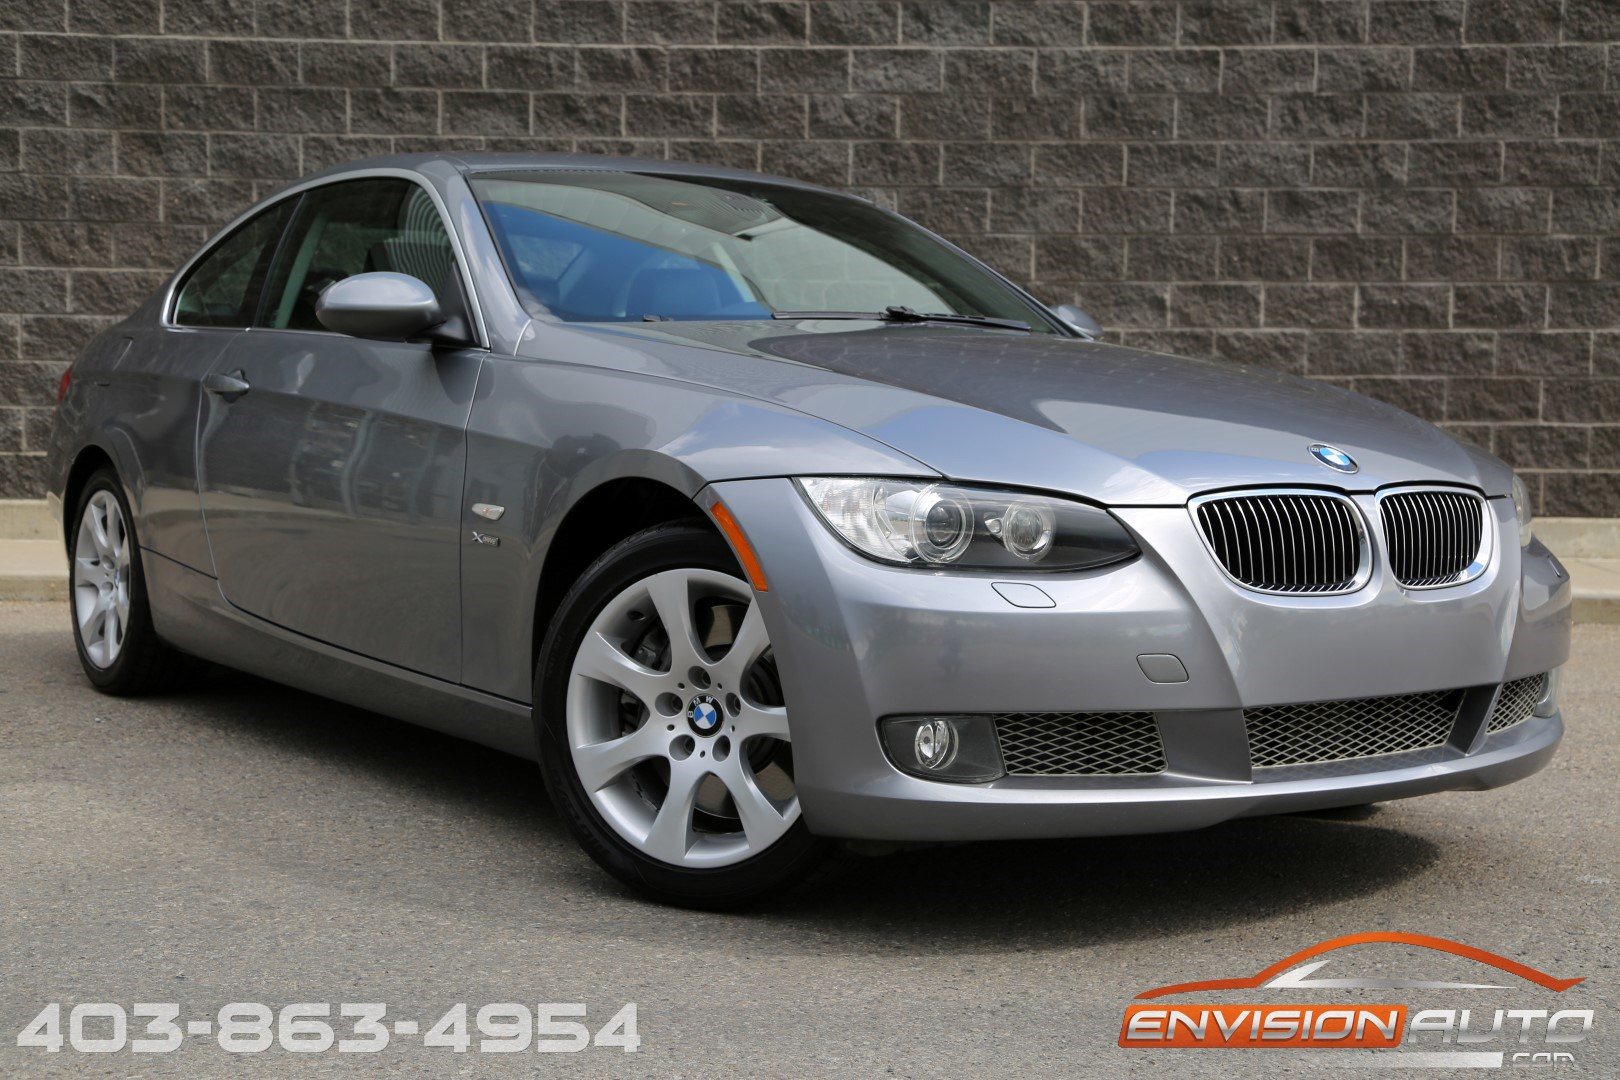 2009 Bmw 335i Xdrive Coupe Warranty Service History